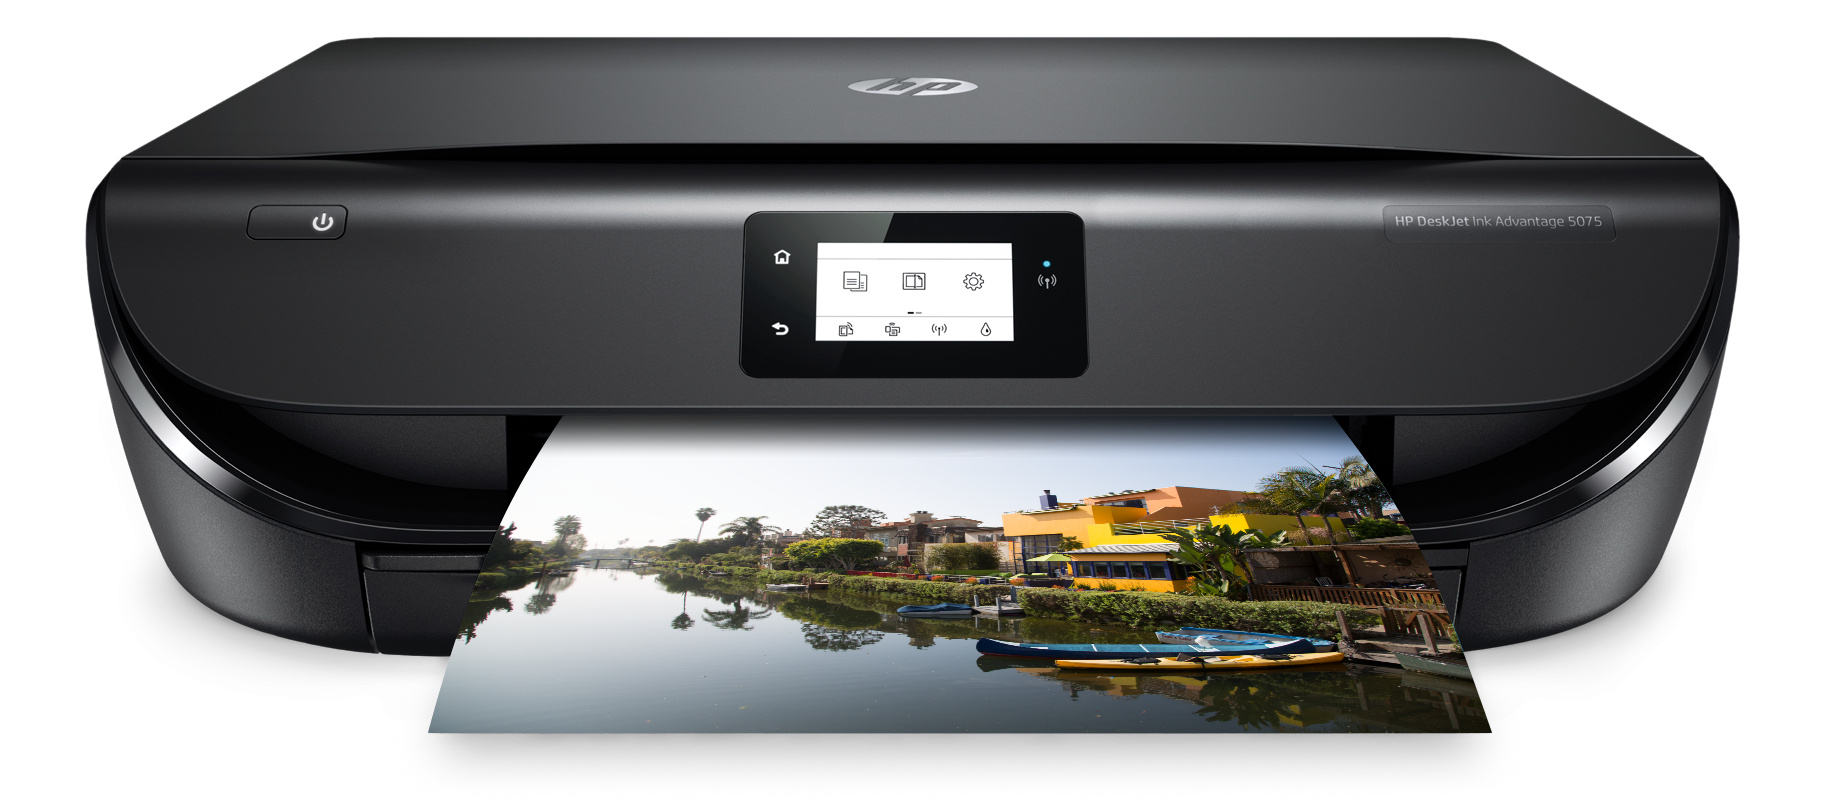 HP DeskJet 5075 Ink Advantage All-in-One Printer